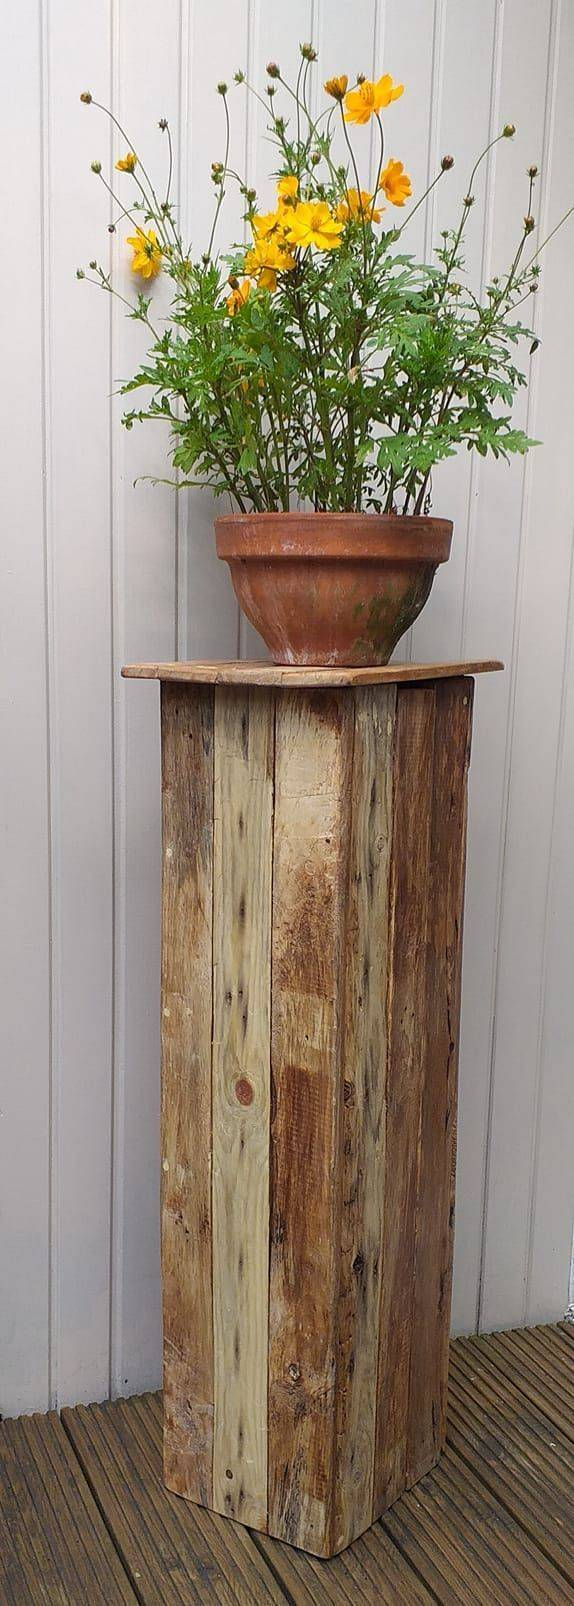 Rustic Wood Plinth Hire, Venue Styling, Surrey, Hampshire